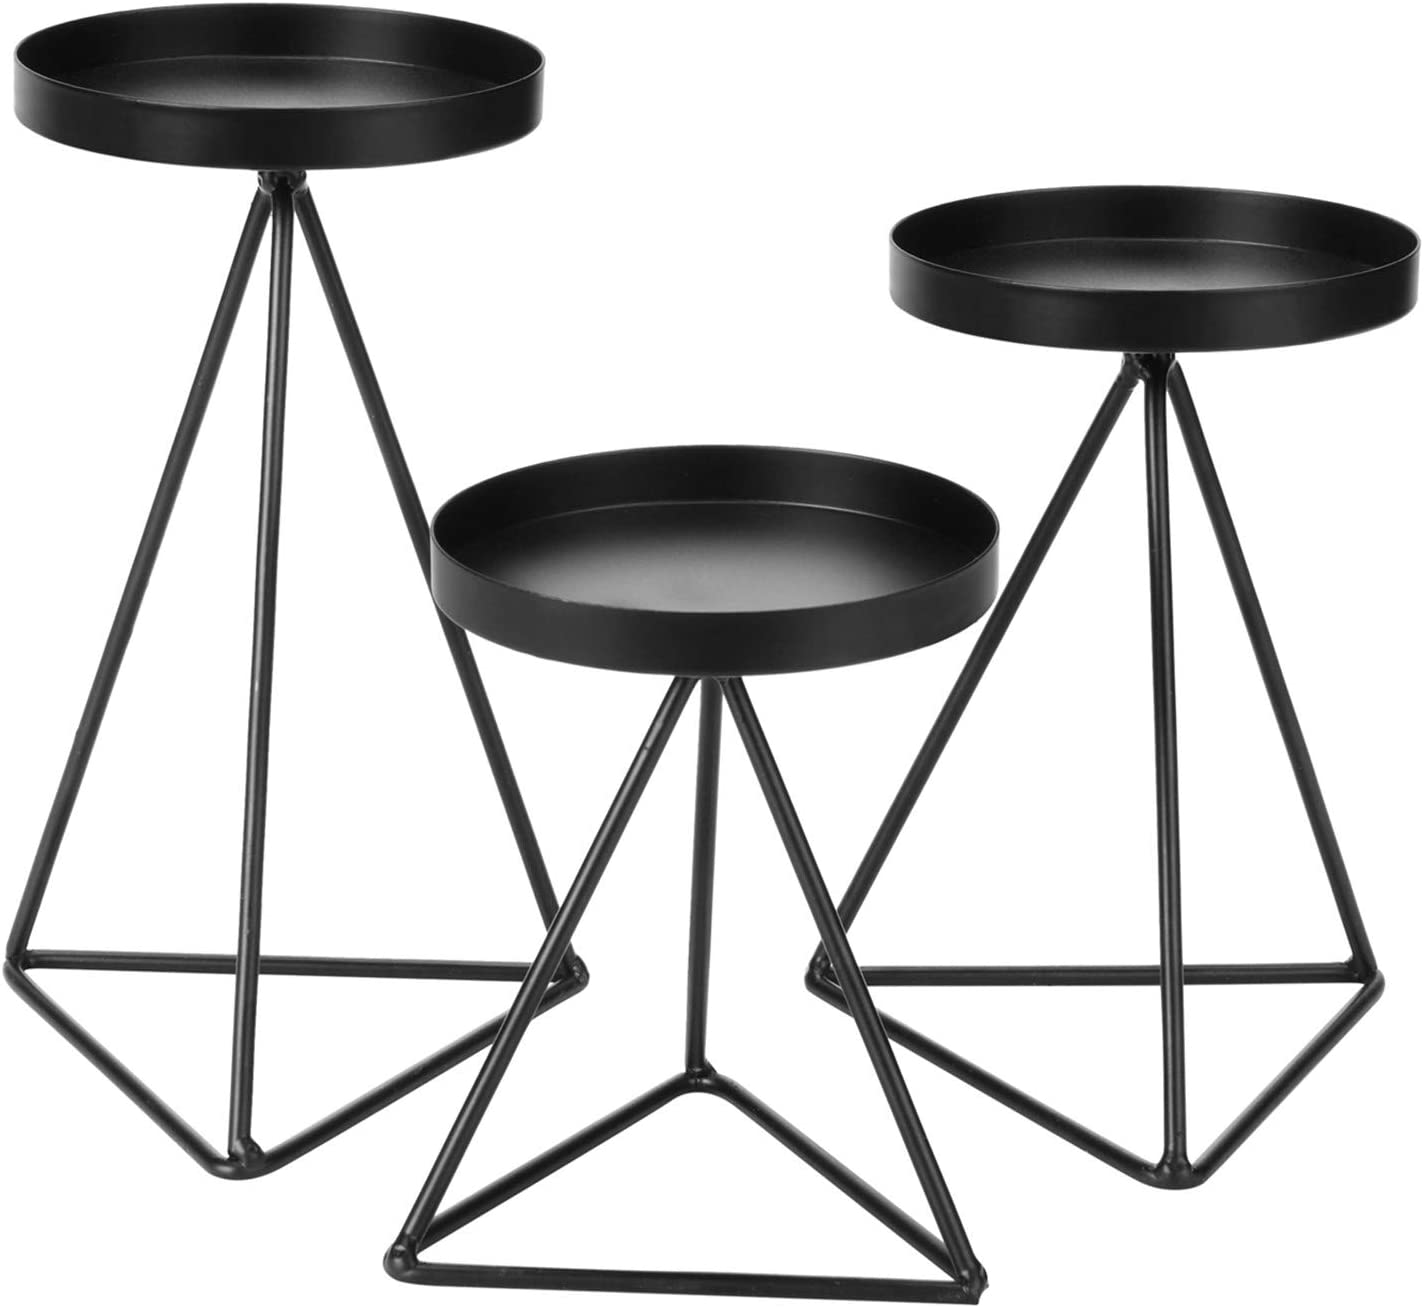 LACGO Set of 3 Geometric Metal Candle Holder for Pillar Candle, 3.5